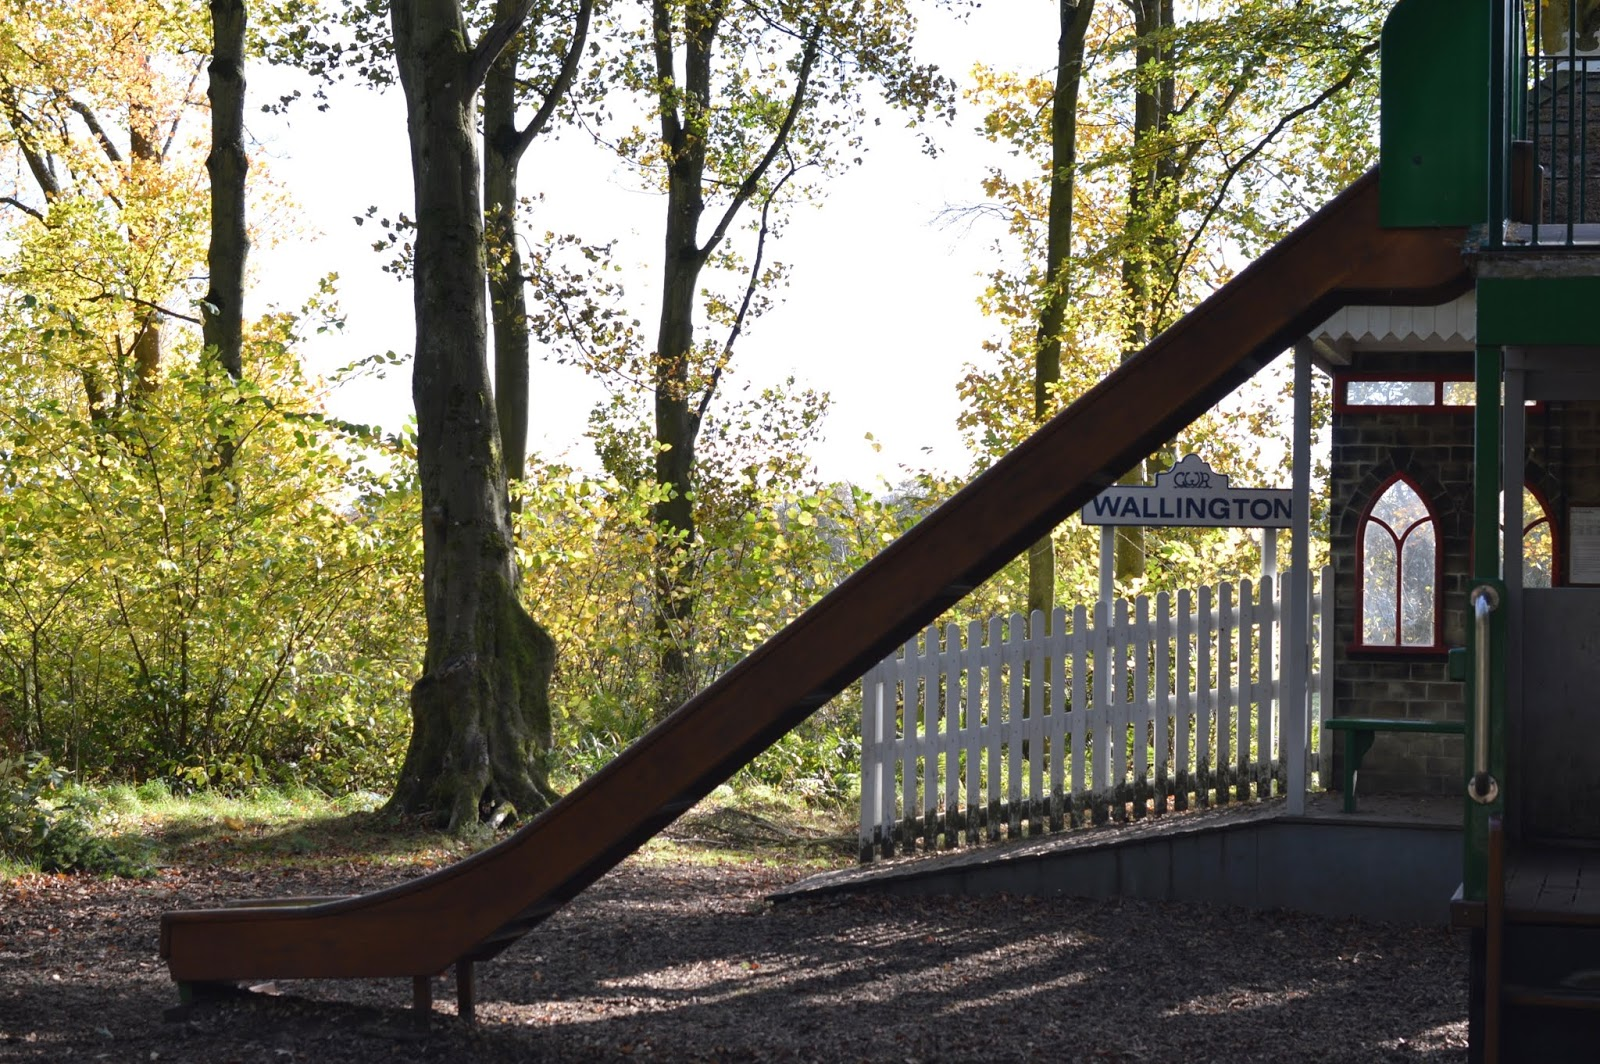 Visiting the Adventure Playground & Outdoor Play Areas at Wallington Hall  - Wallington station